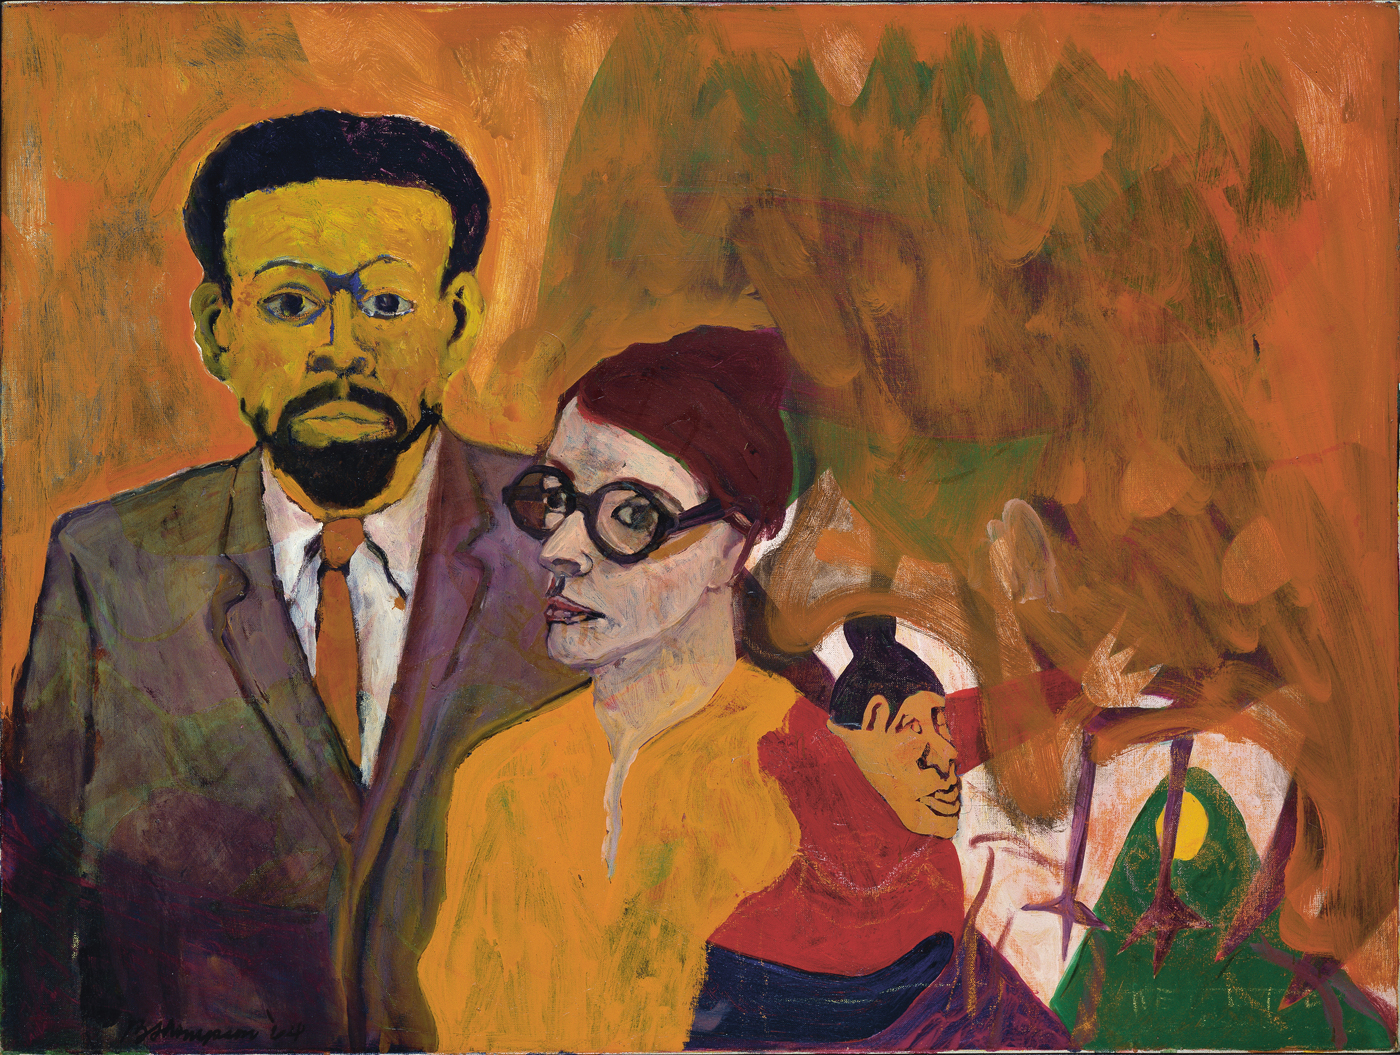 """Bob Thompson, """"Le Roi Jones and his Family"""" (1964), oil on canvas, Hirshhorn Museum and Sculpture Garden, Smithsonian Institution, Washington, DC (© Estate of Bob Thompson; Courtesy of Michael Rosenfeld Gallery LLC, New York, NY; photo by Lee Stalsworth)"""